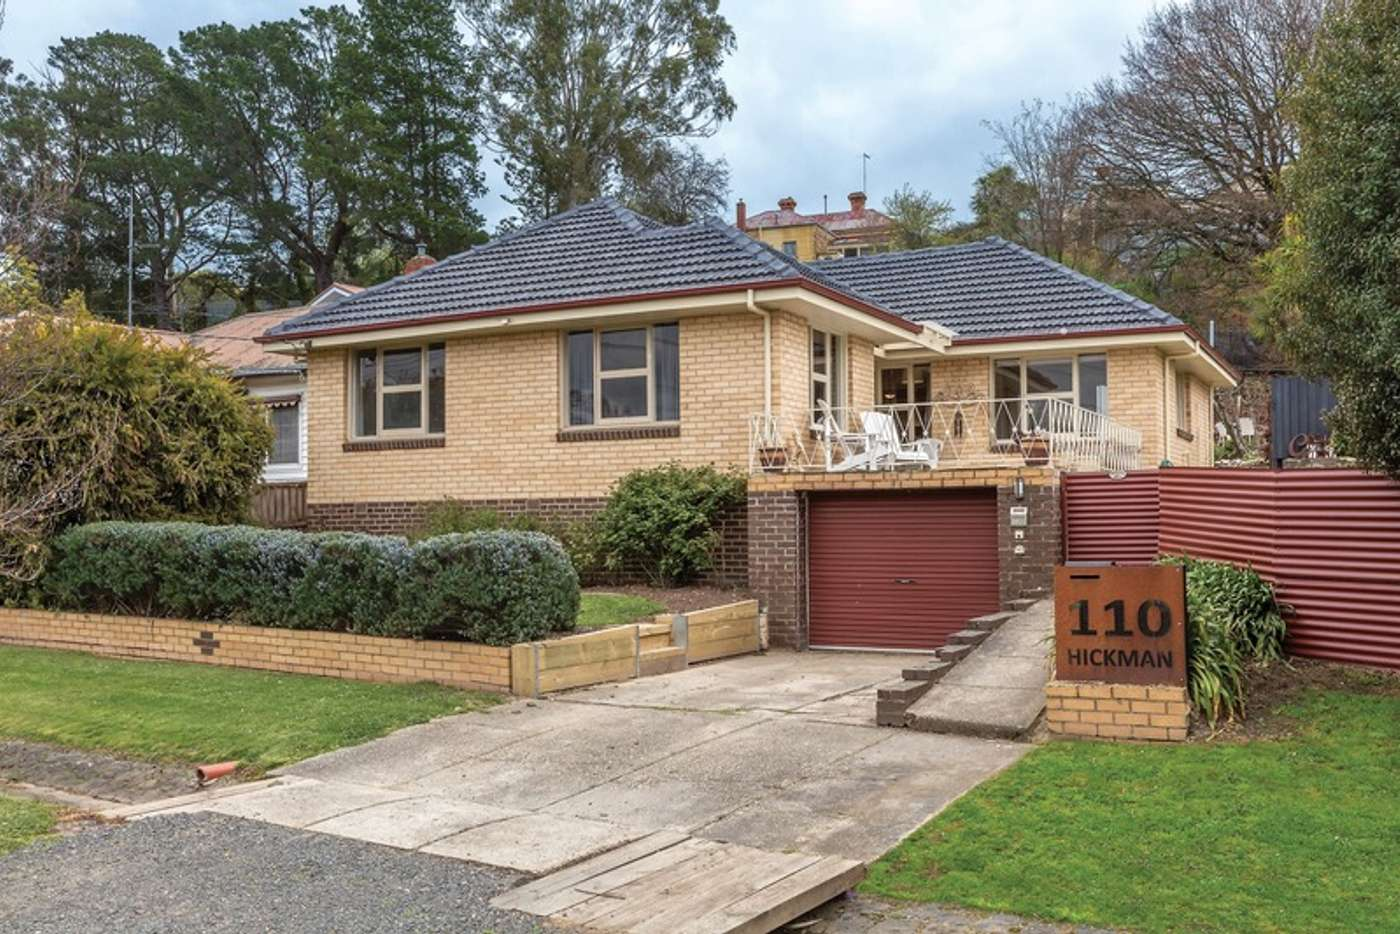 Main view of Homely house listing, 110 Hickman Street, Ballarat Central VIC 3350